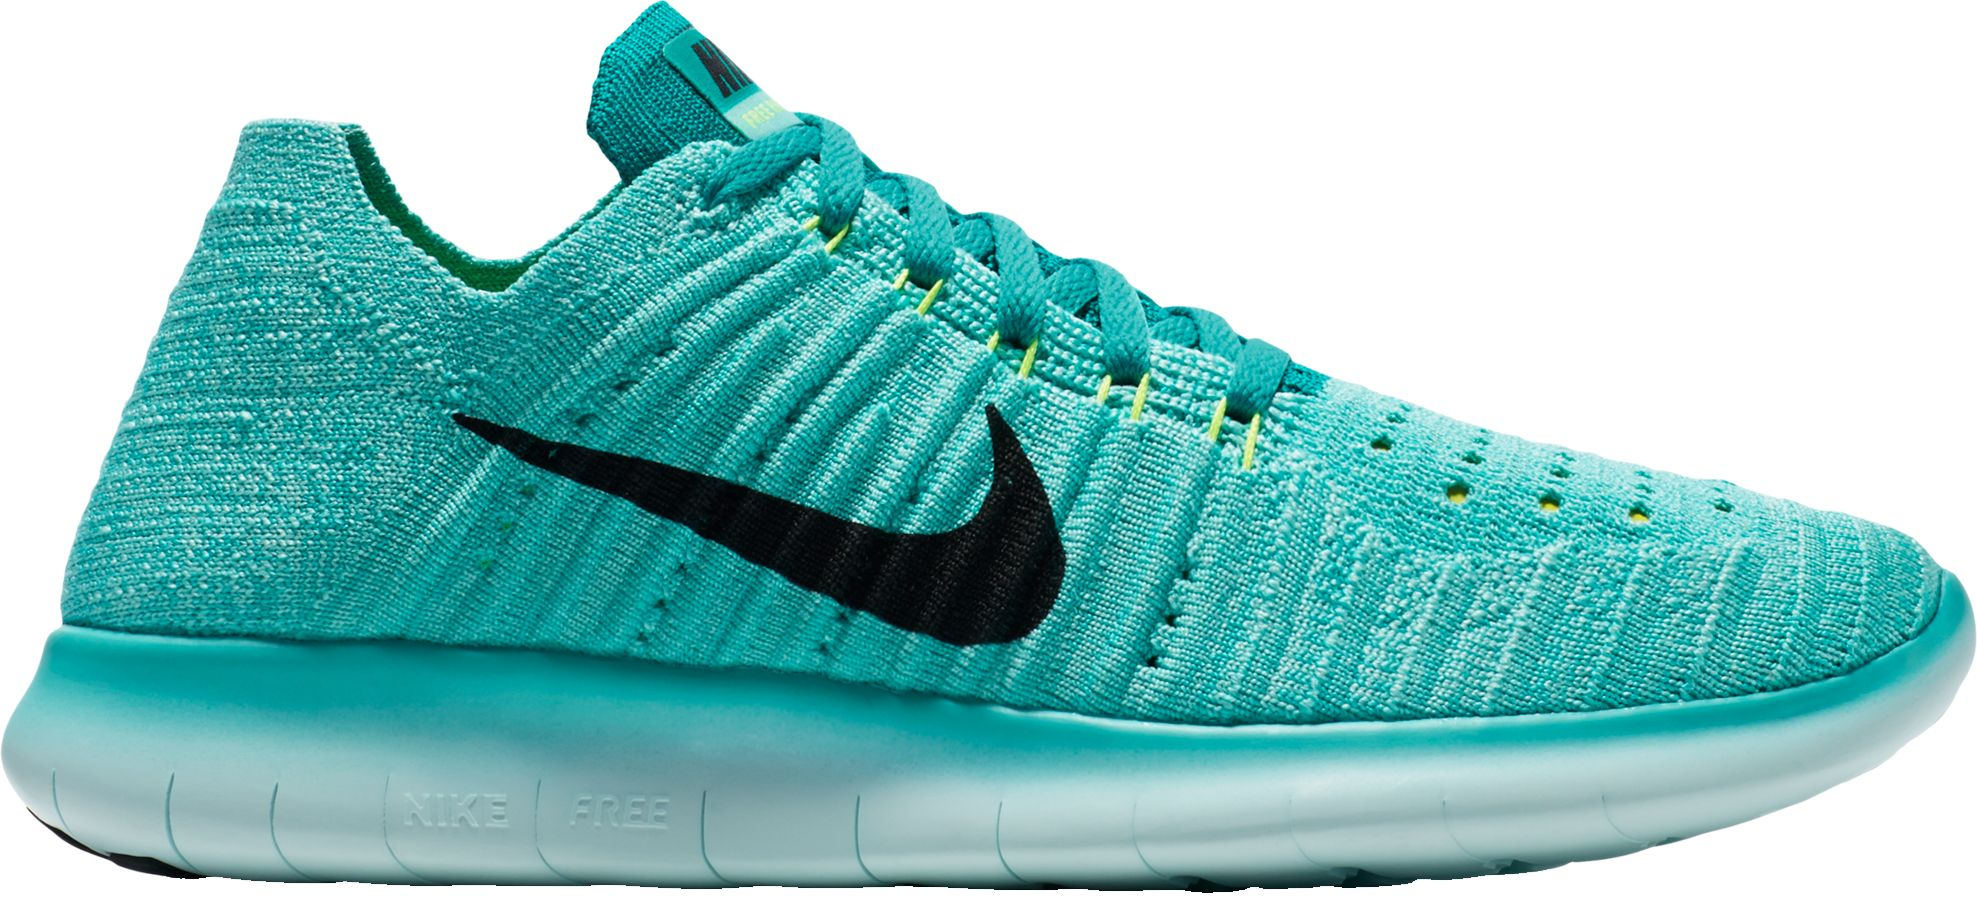 Womens Black And Teal Nike Shoes